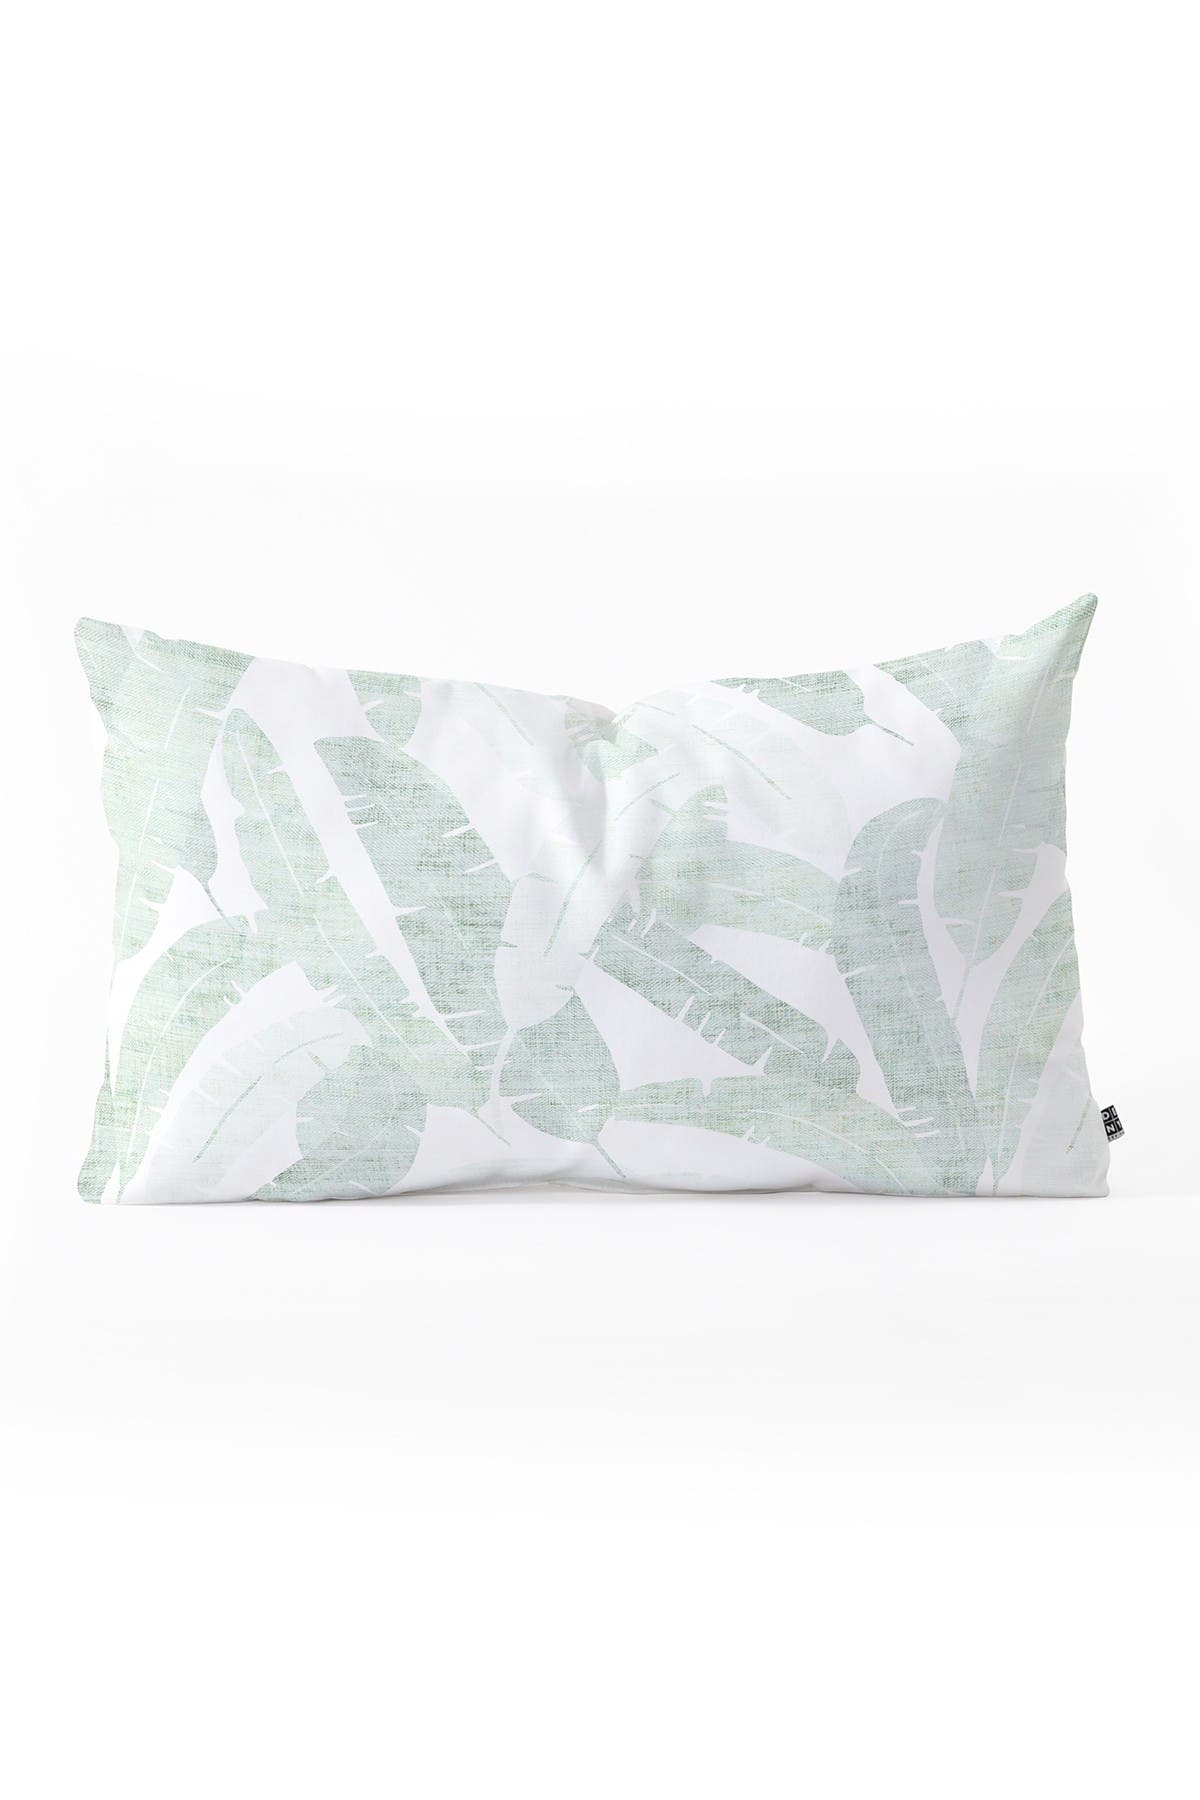 "Image of Deny Designs Holli Zollinger Banana Leaf Light Throw Pillow - 23"" x 14"""